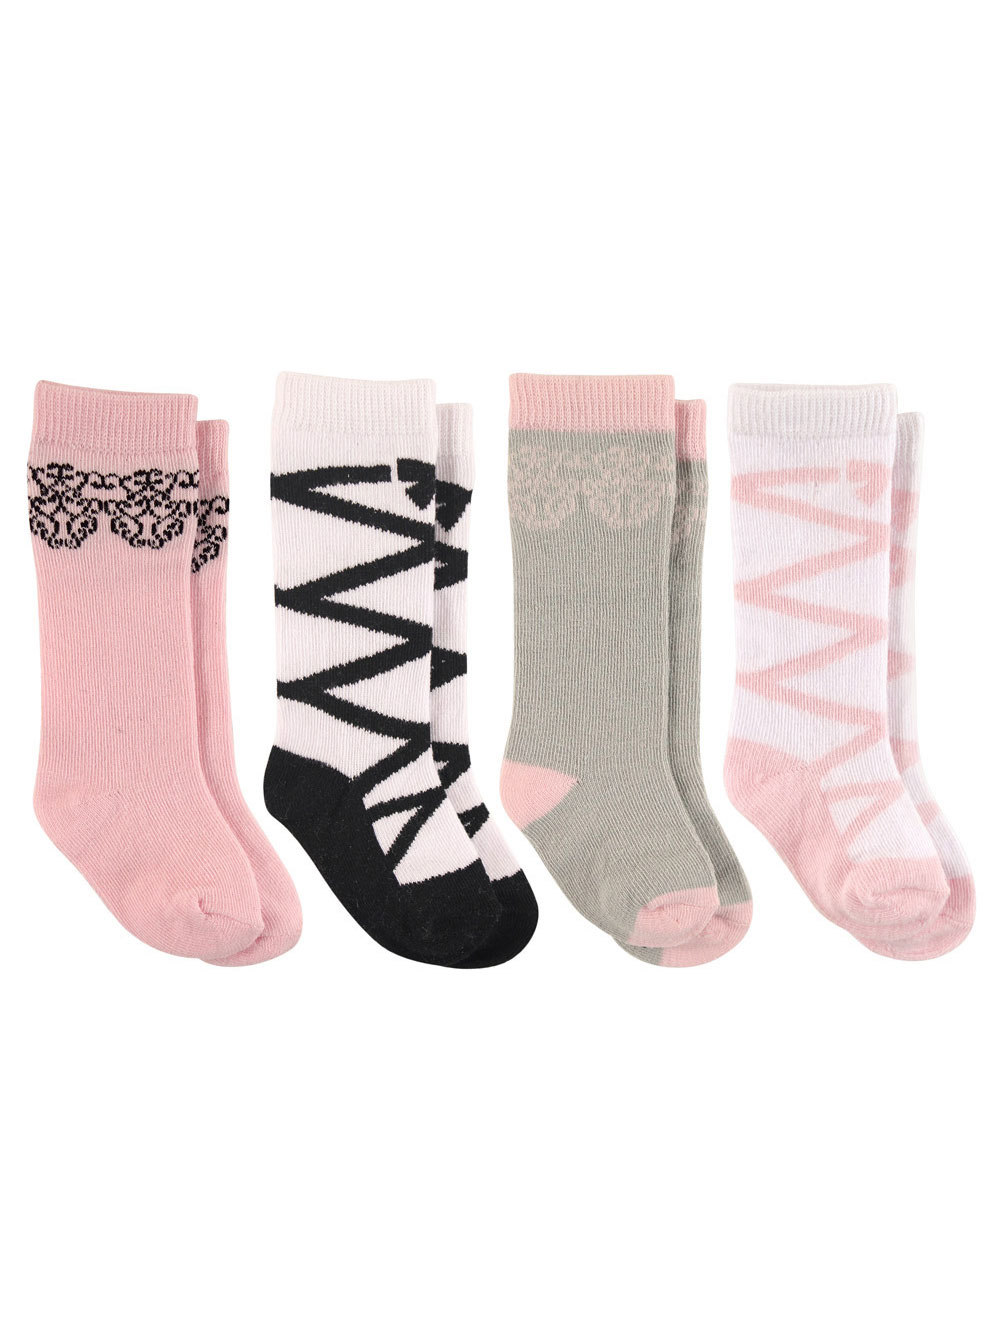 KNEE HIGH Baby Girls Pink White Bow Socks Special Occasion 3-6-12-18m